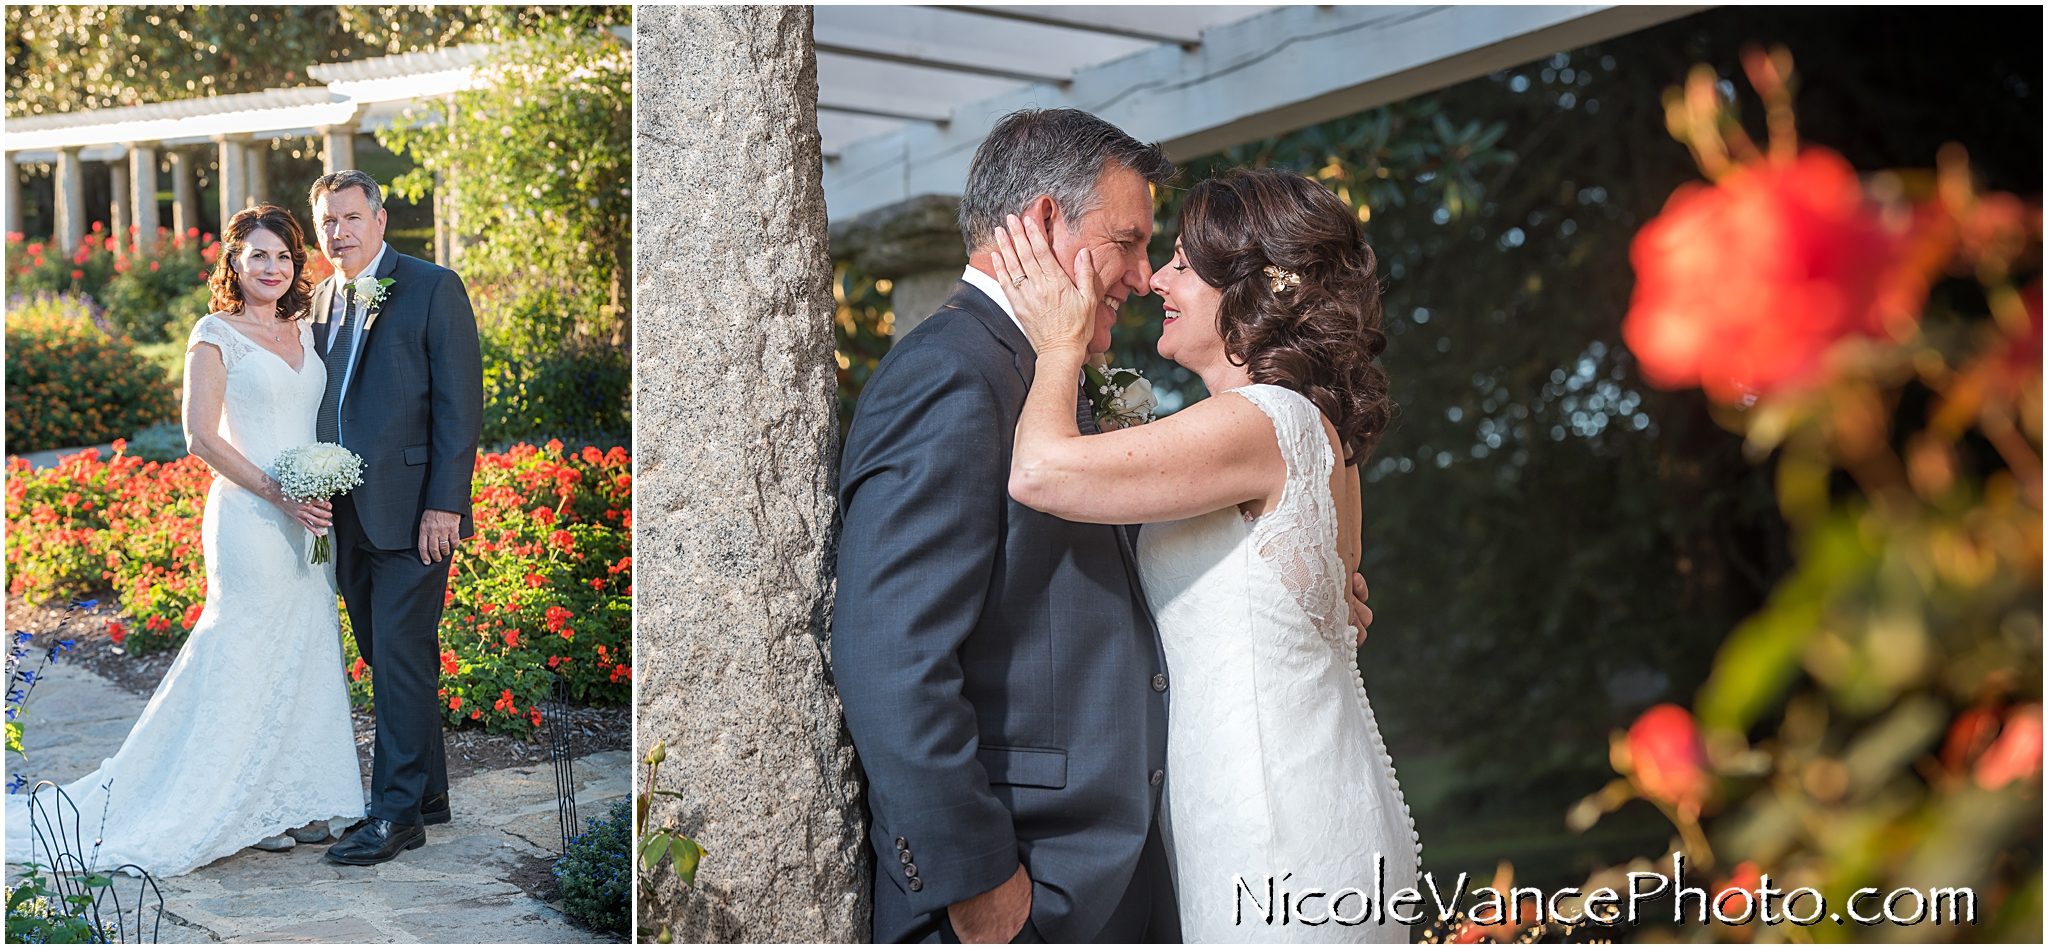 The bride and groom pose in the Italian Garden at Maymont Park in Richmond, VA.